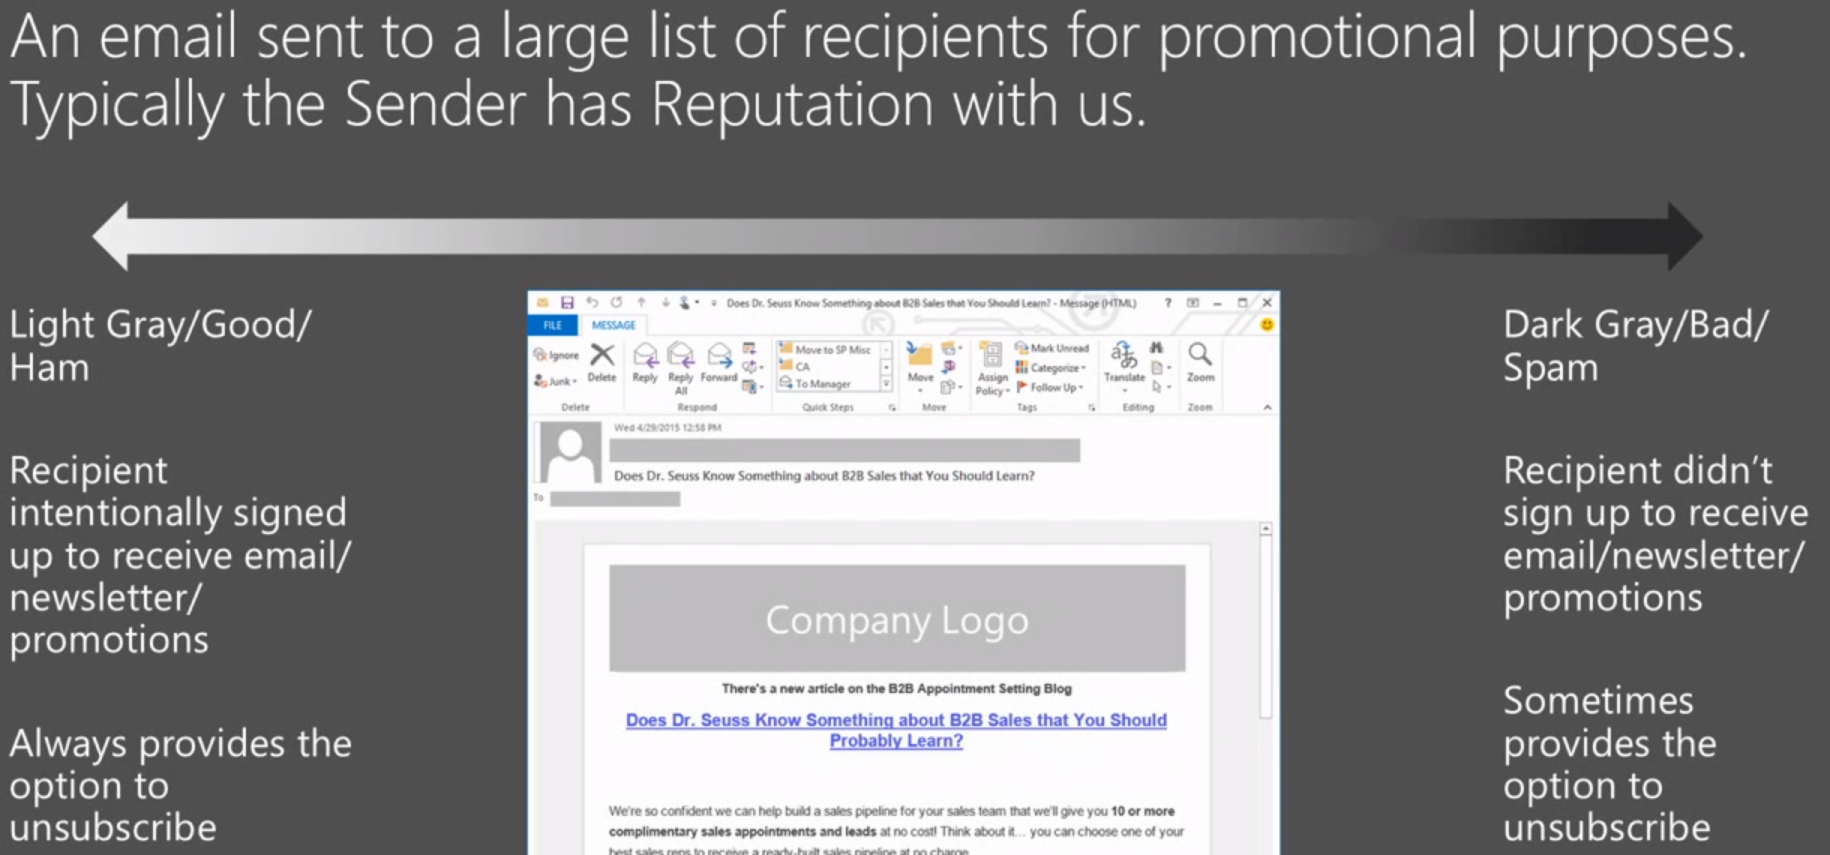 An email sent to a large list of recipients for promotional purposes.